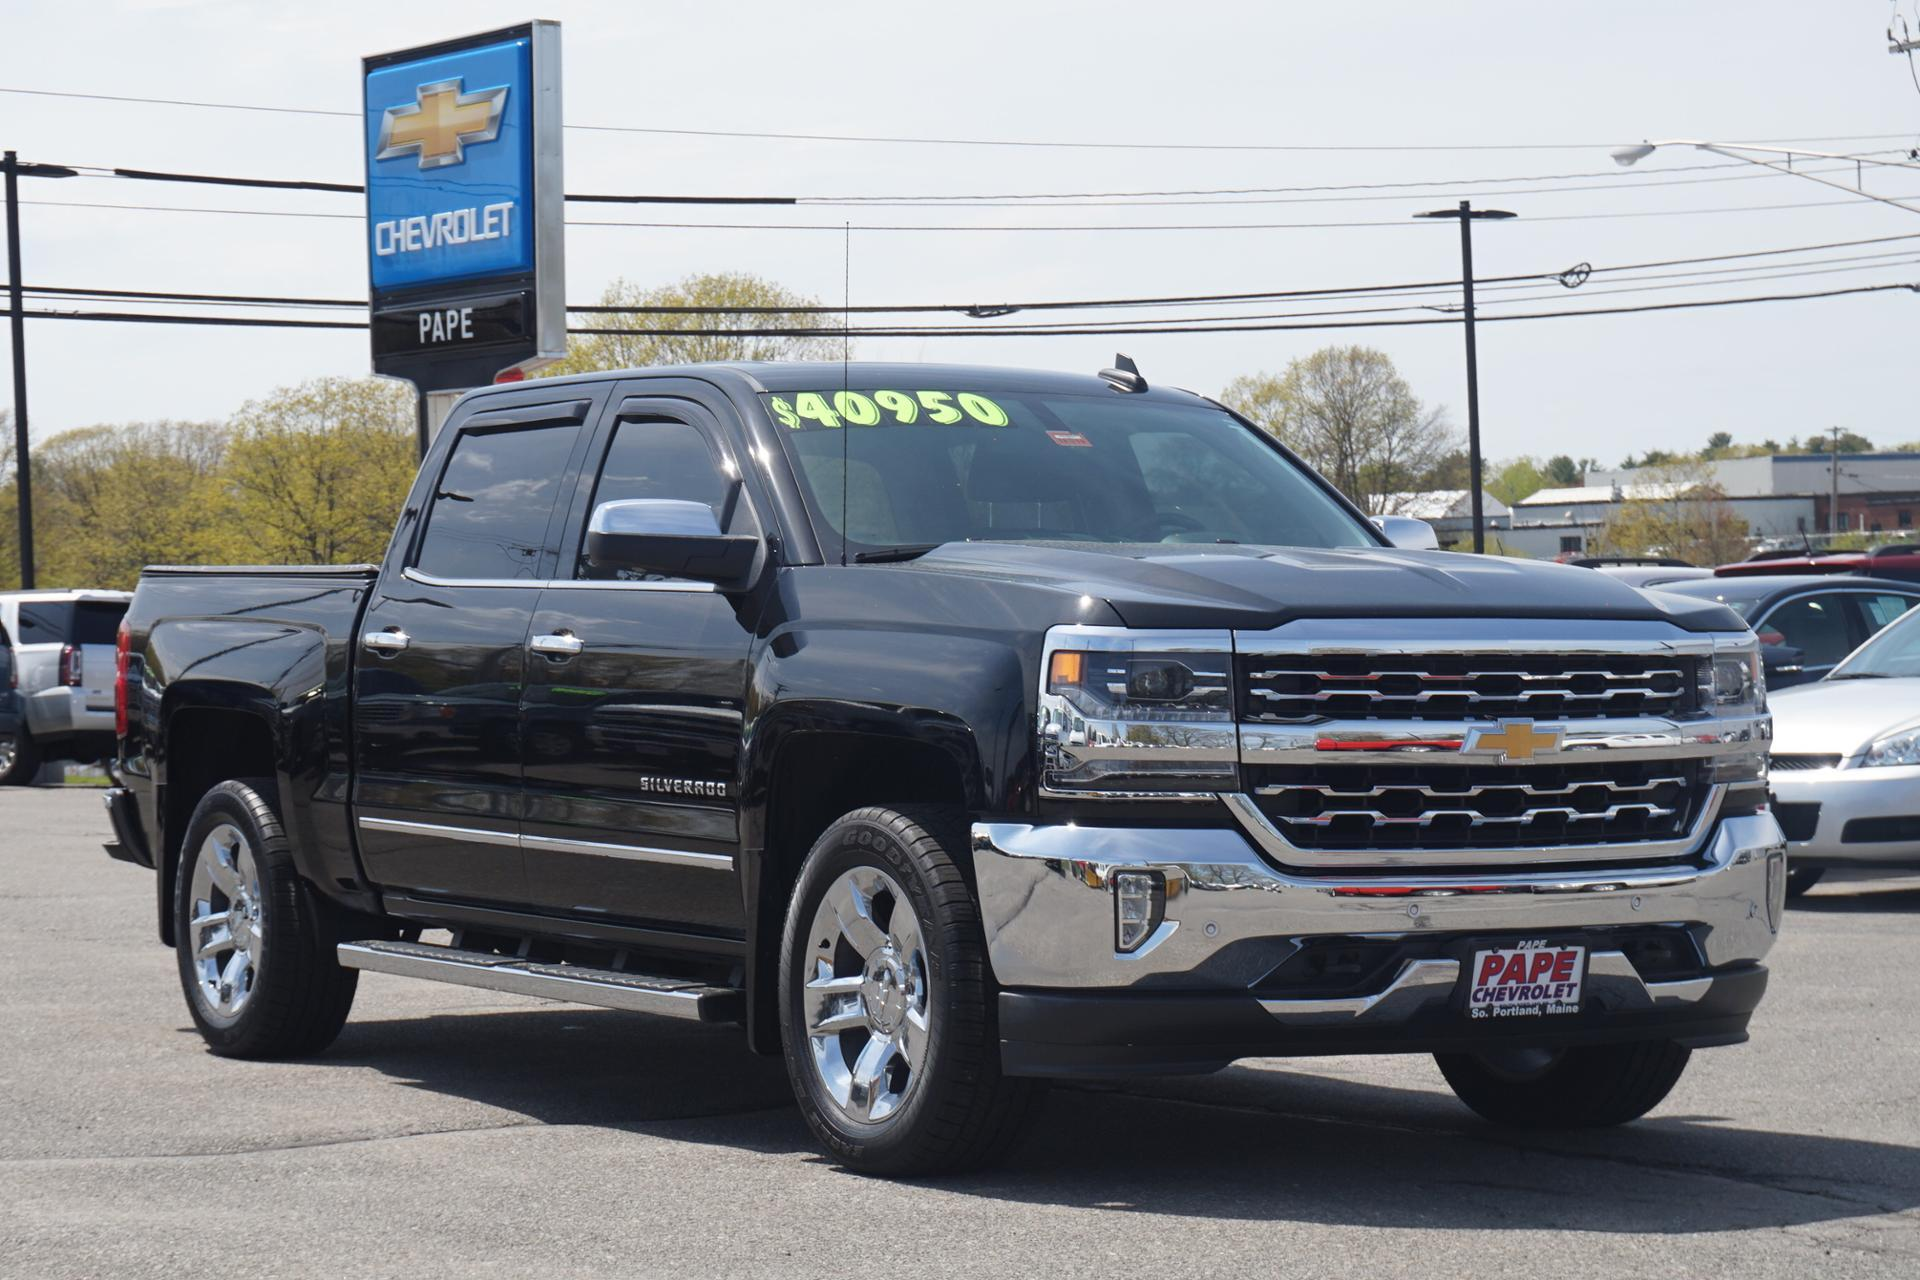 Used 4 Wheel Drive Cars for Sale Near Me Fresh south Portland All 2016 Chevrolet Silverado 1500 Vehicles for Sale